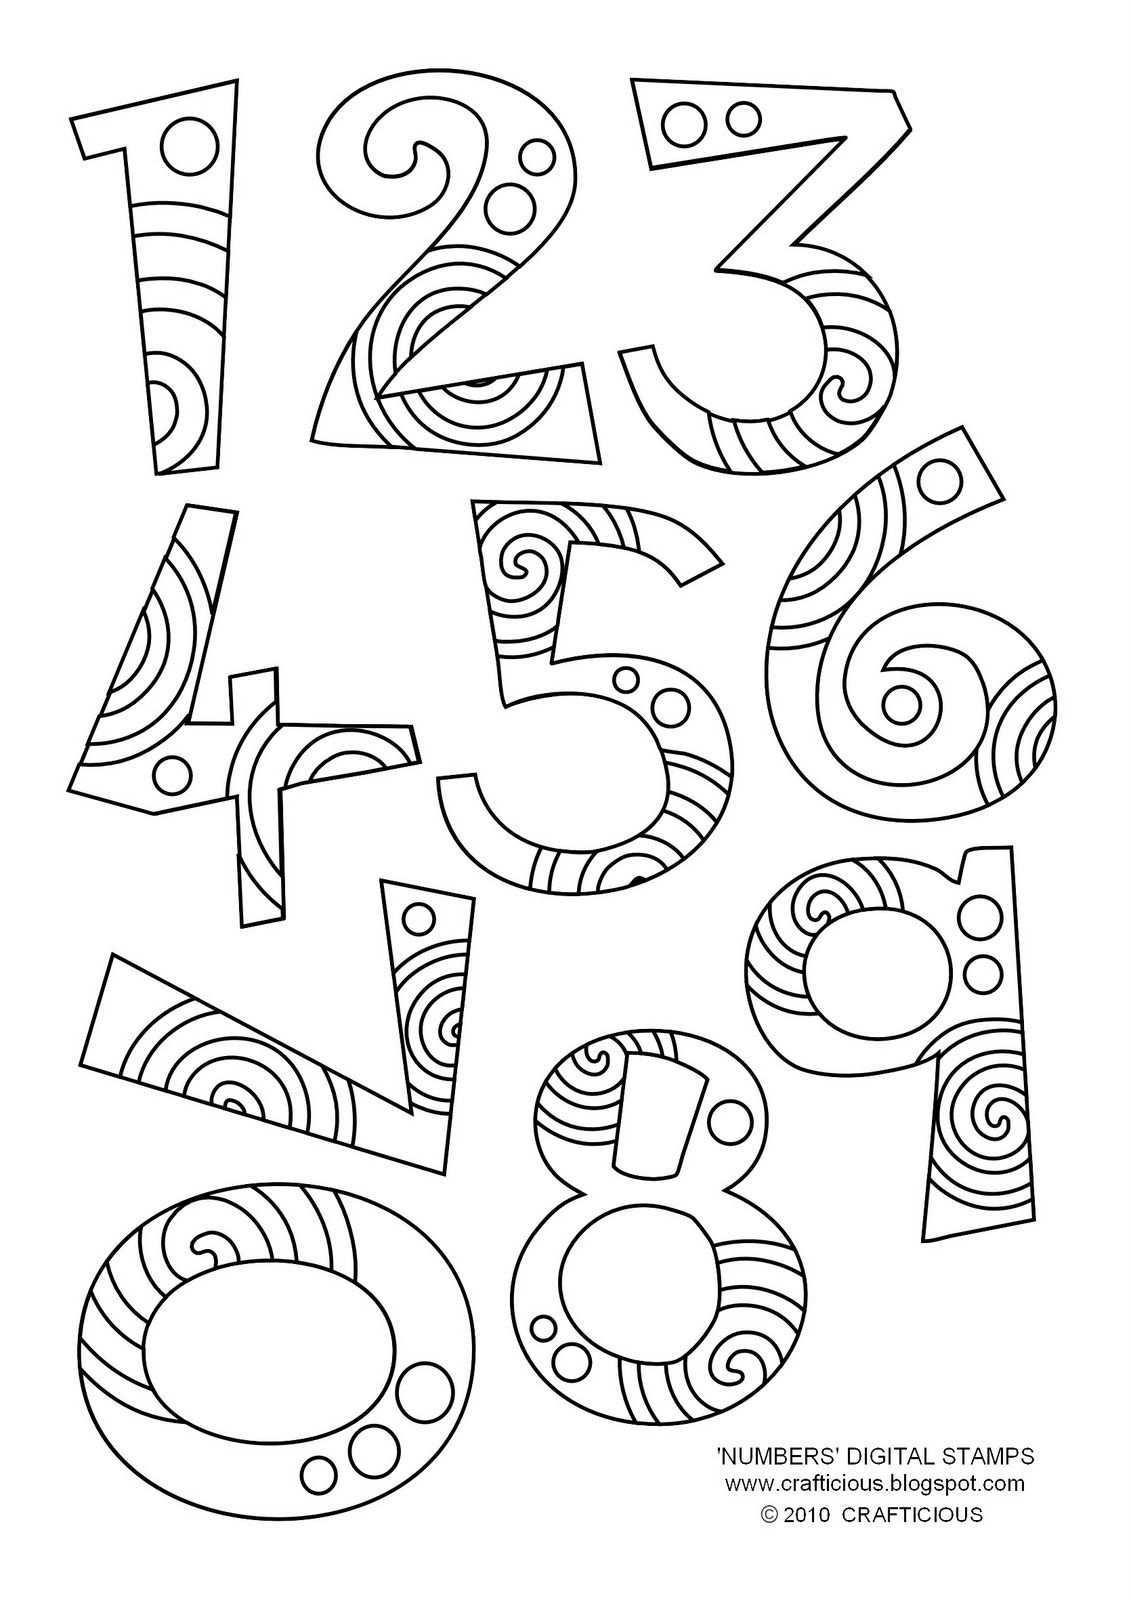 New Year Free Download Digital Stamps Digital Stamps Stamp Doodle Lettering